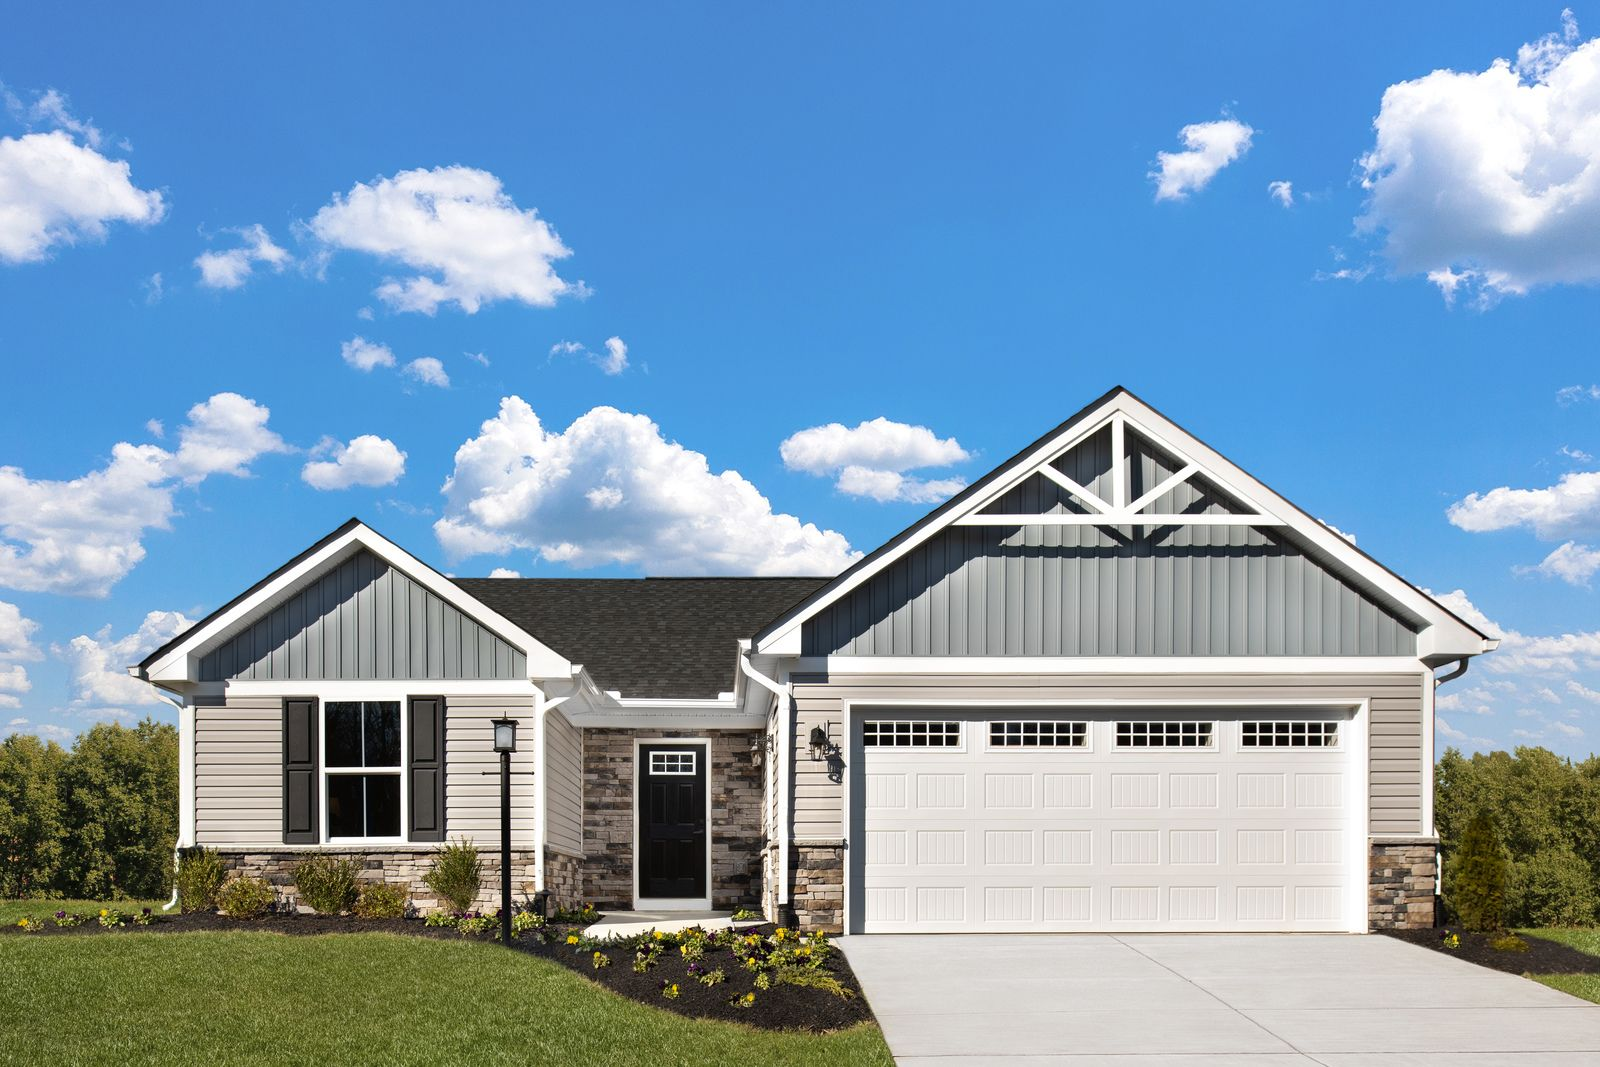 Welcome to Tartan Meadows - Easy Living Ranch Homes in Milford:Own a brand new home in a serene, peaceful community from the lower $200s. Enjoy included lawn care & snow removal, and easy access to I-275.Click here to schedule your visit to Tartan Meadows!